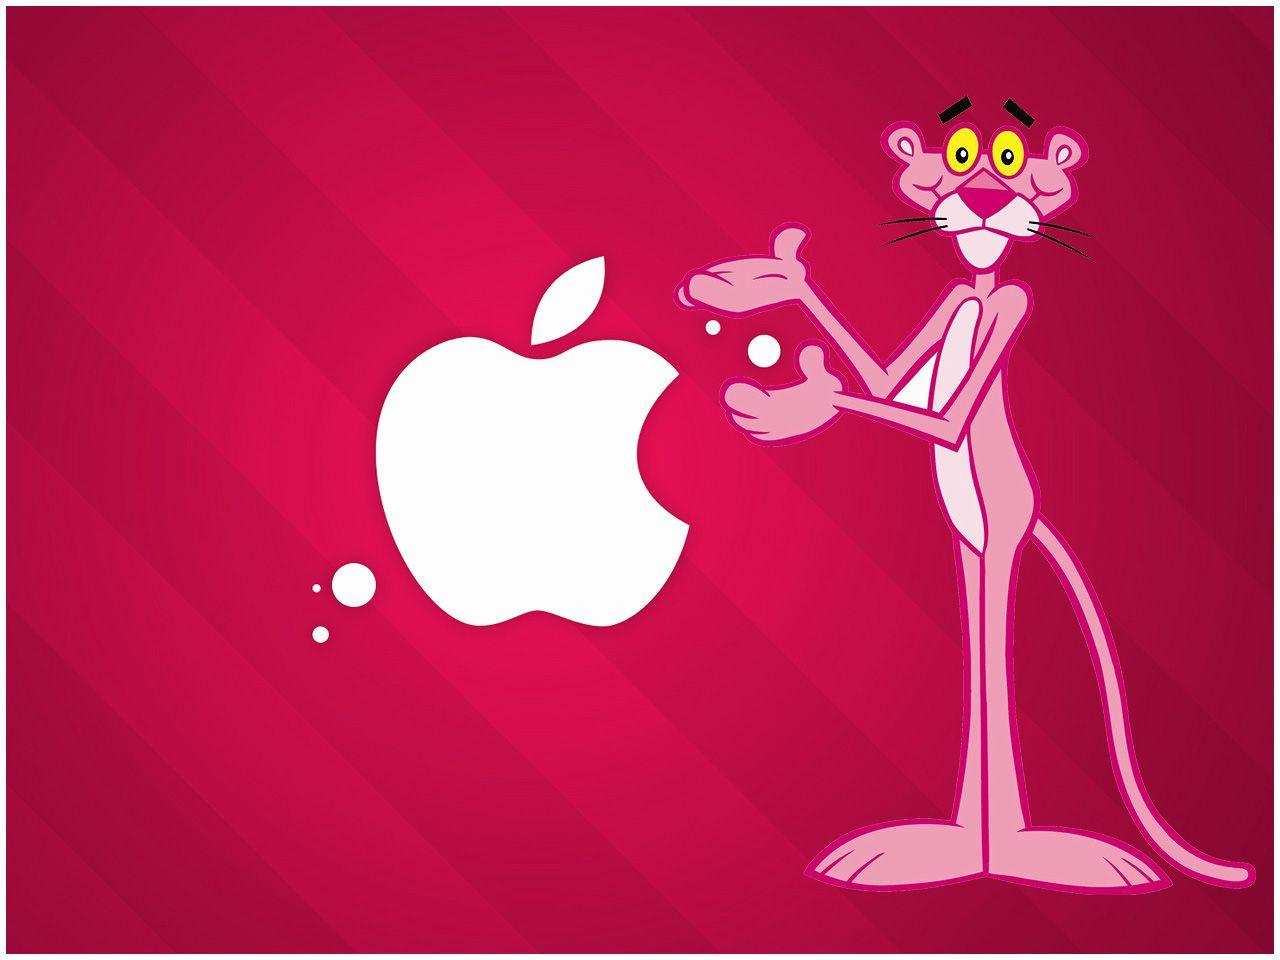 Pink Panther Computer Wallpapers Desktop Backgrounds 1280x960 Id